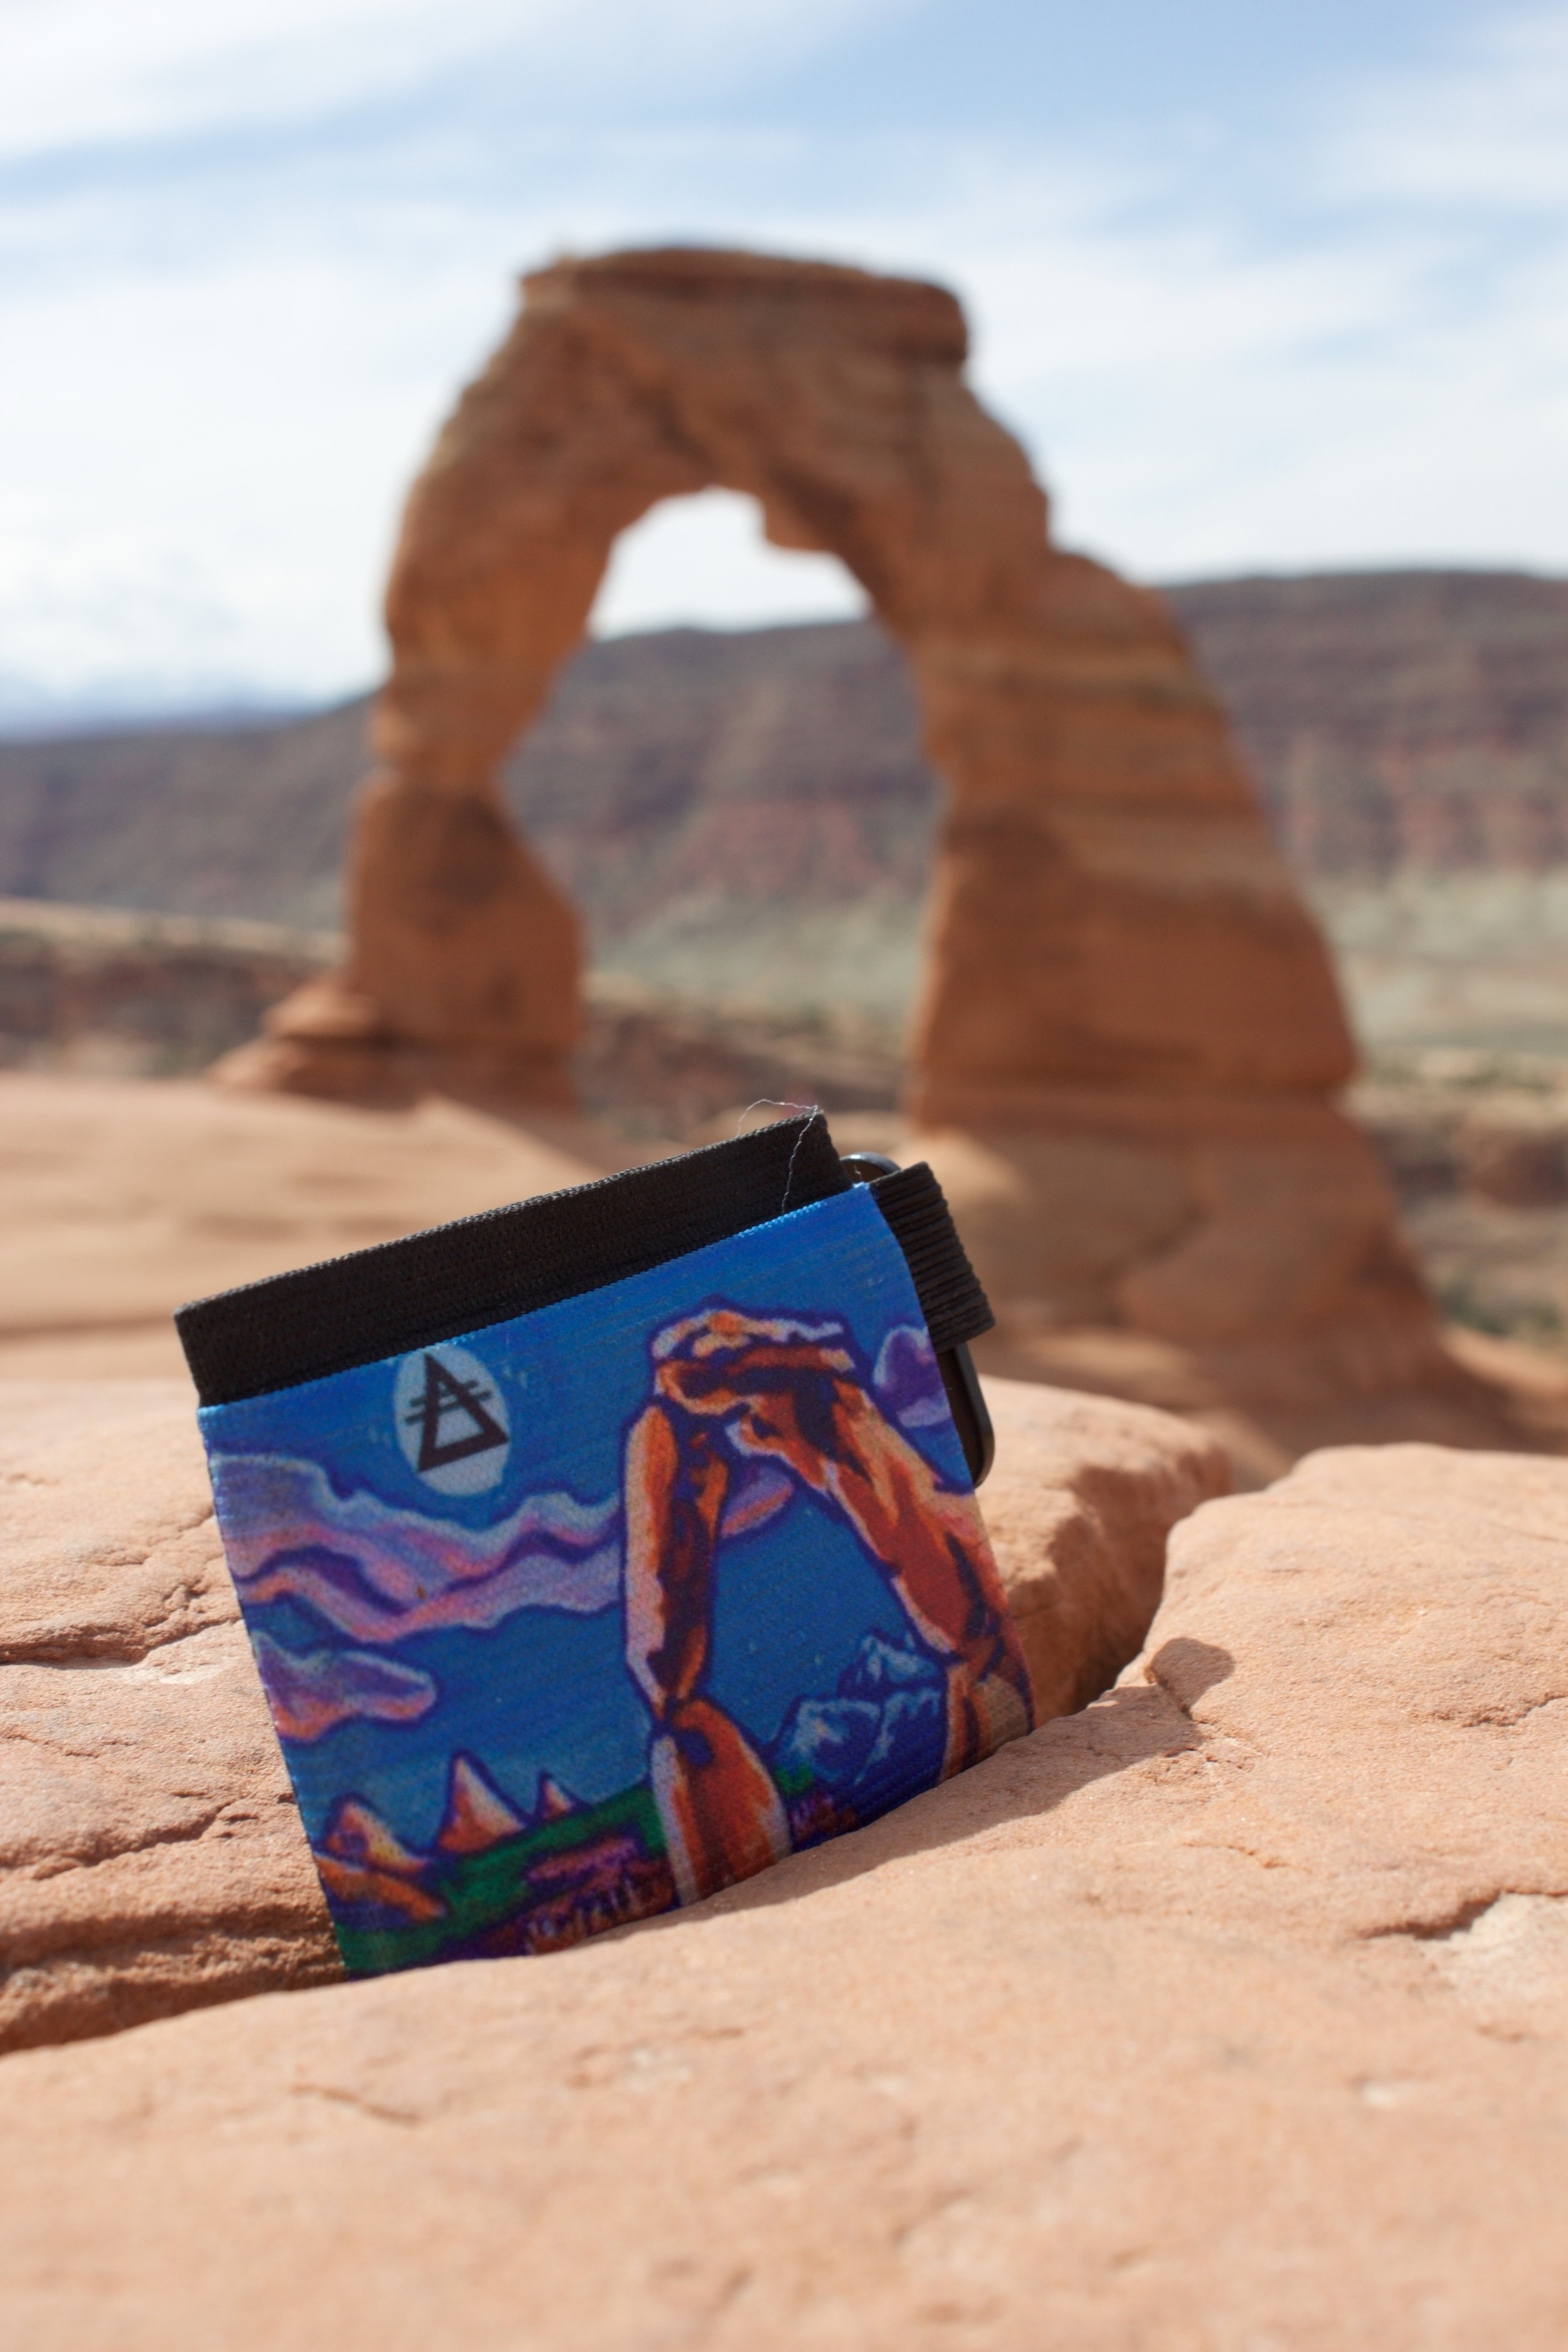 Roam Products  makes my amazing American- Made minimalist wallets so you can carry artwork around in your pocket! Thanks Roam!